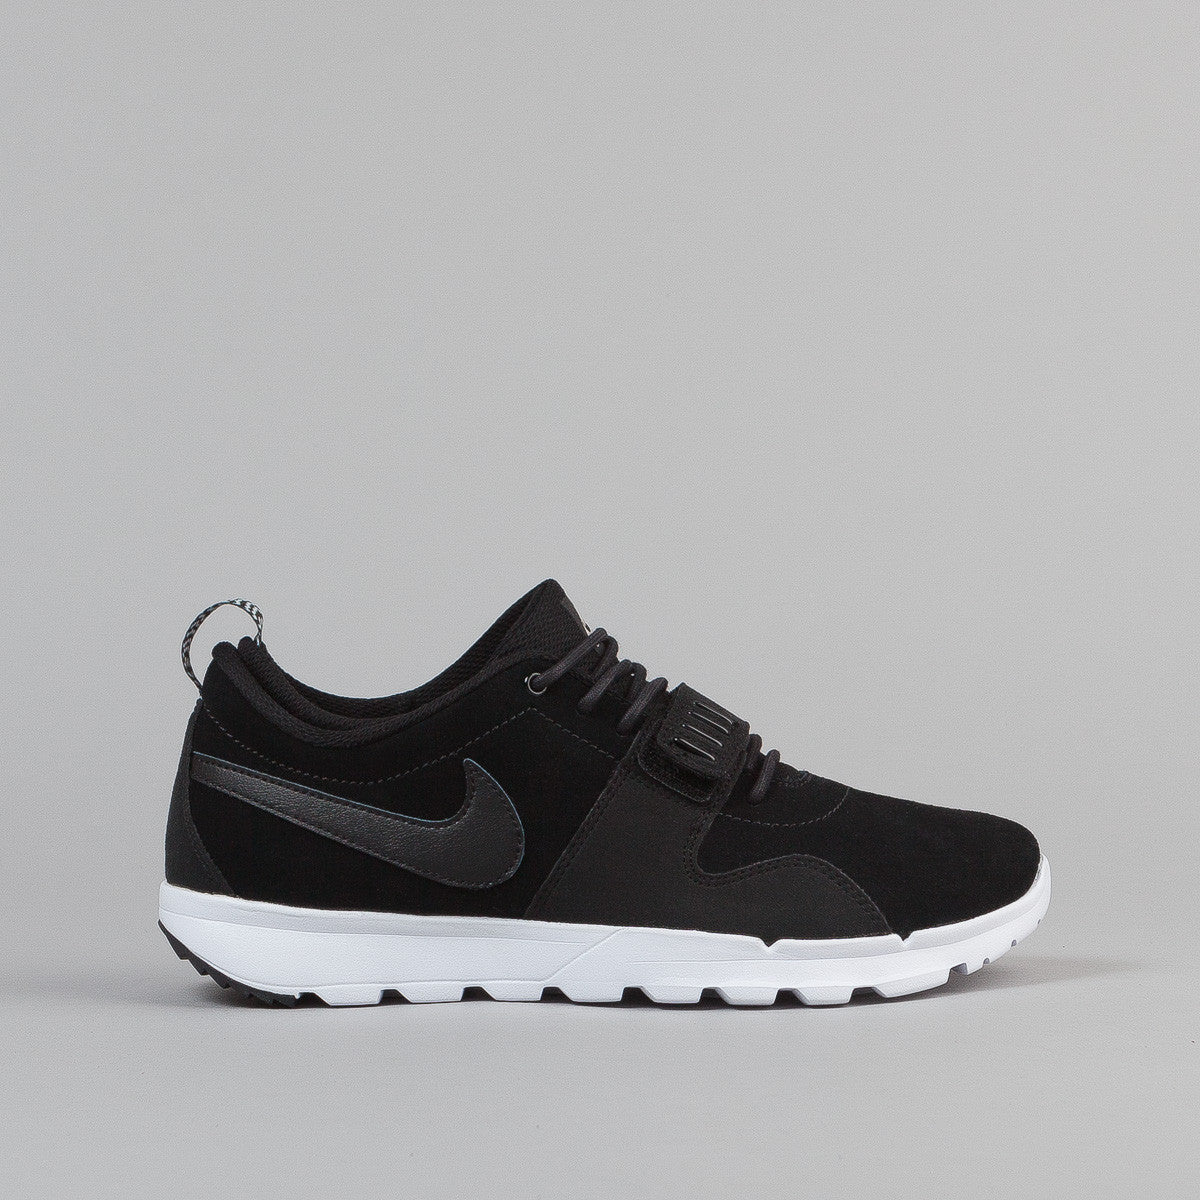 Nike SB Trainerendor L Shoes - Black / Black / White | Flatspot